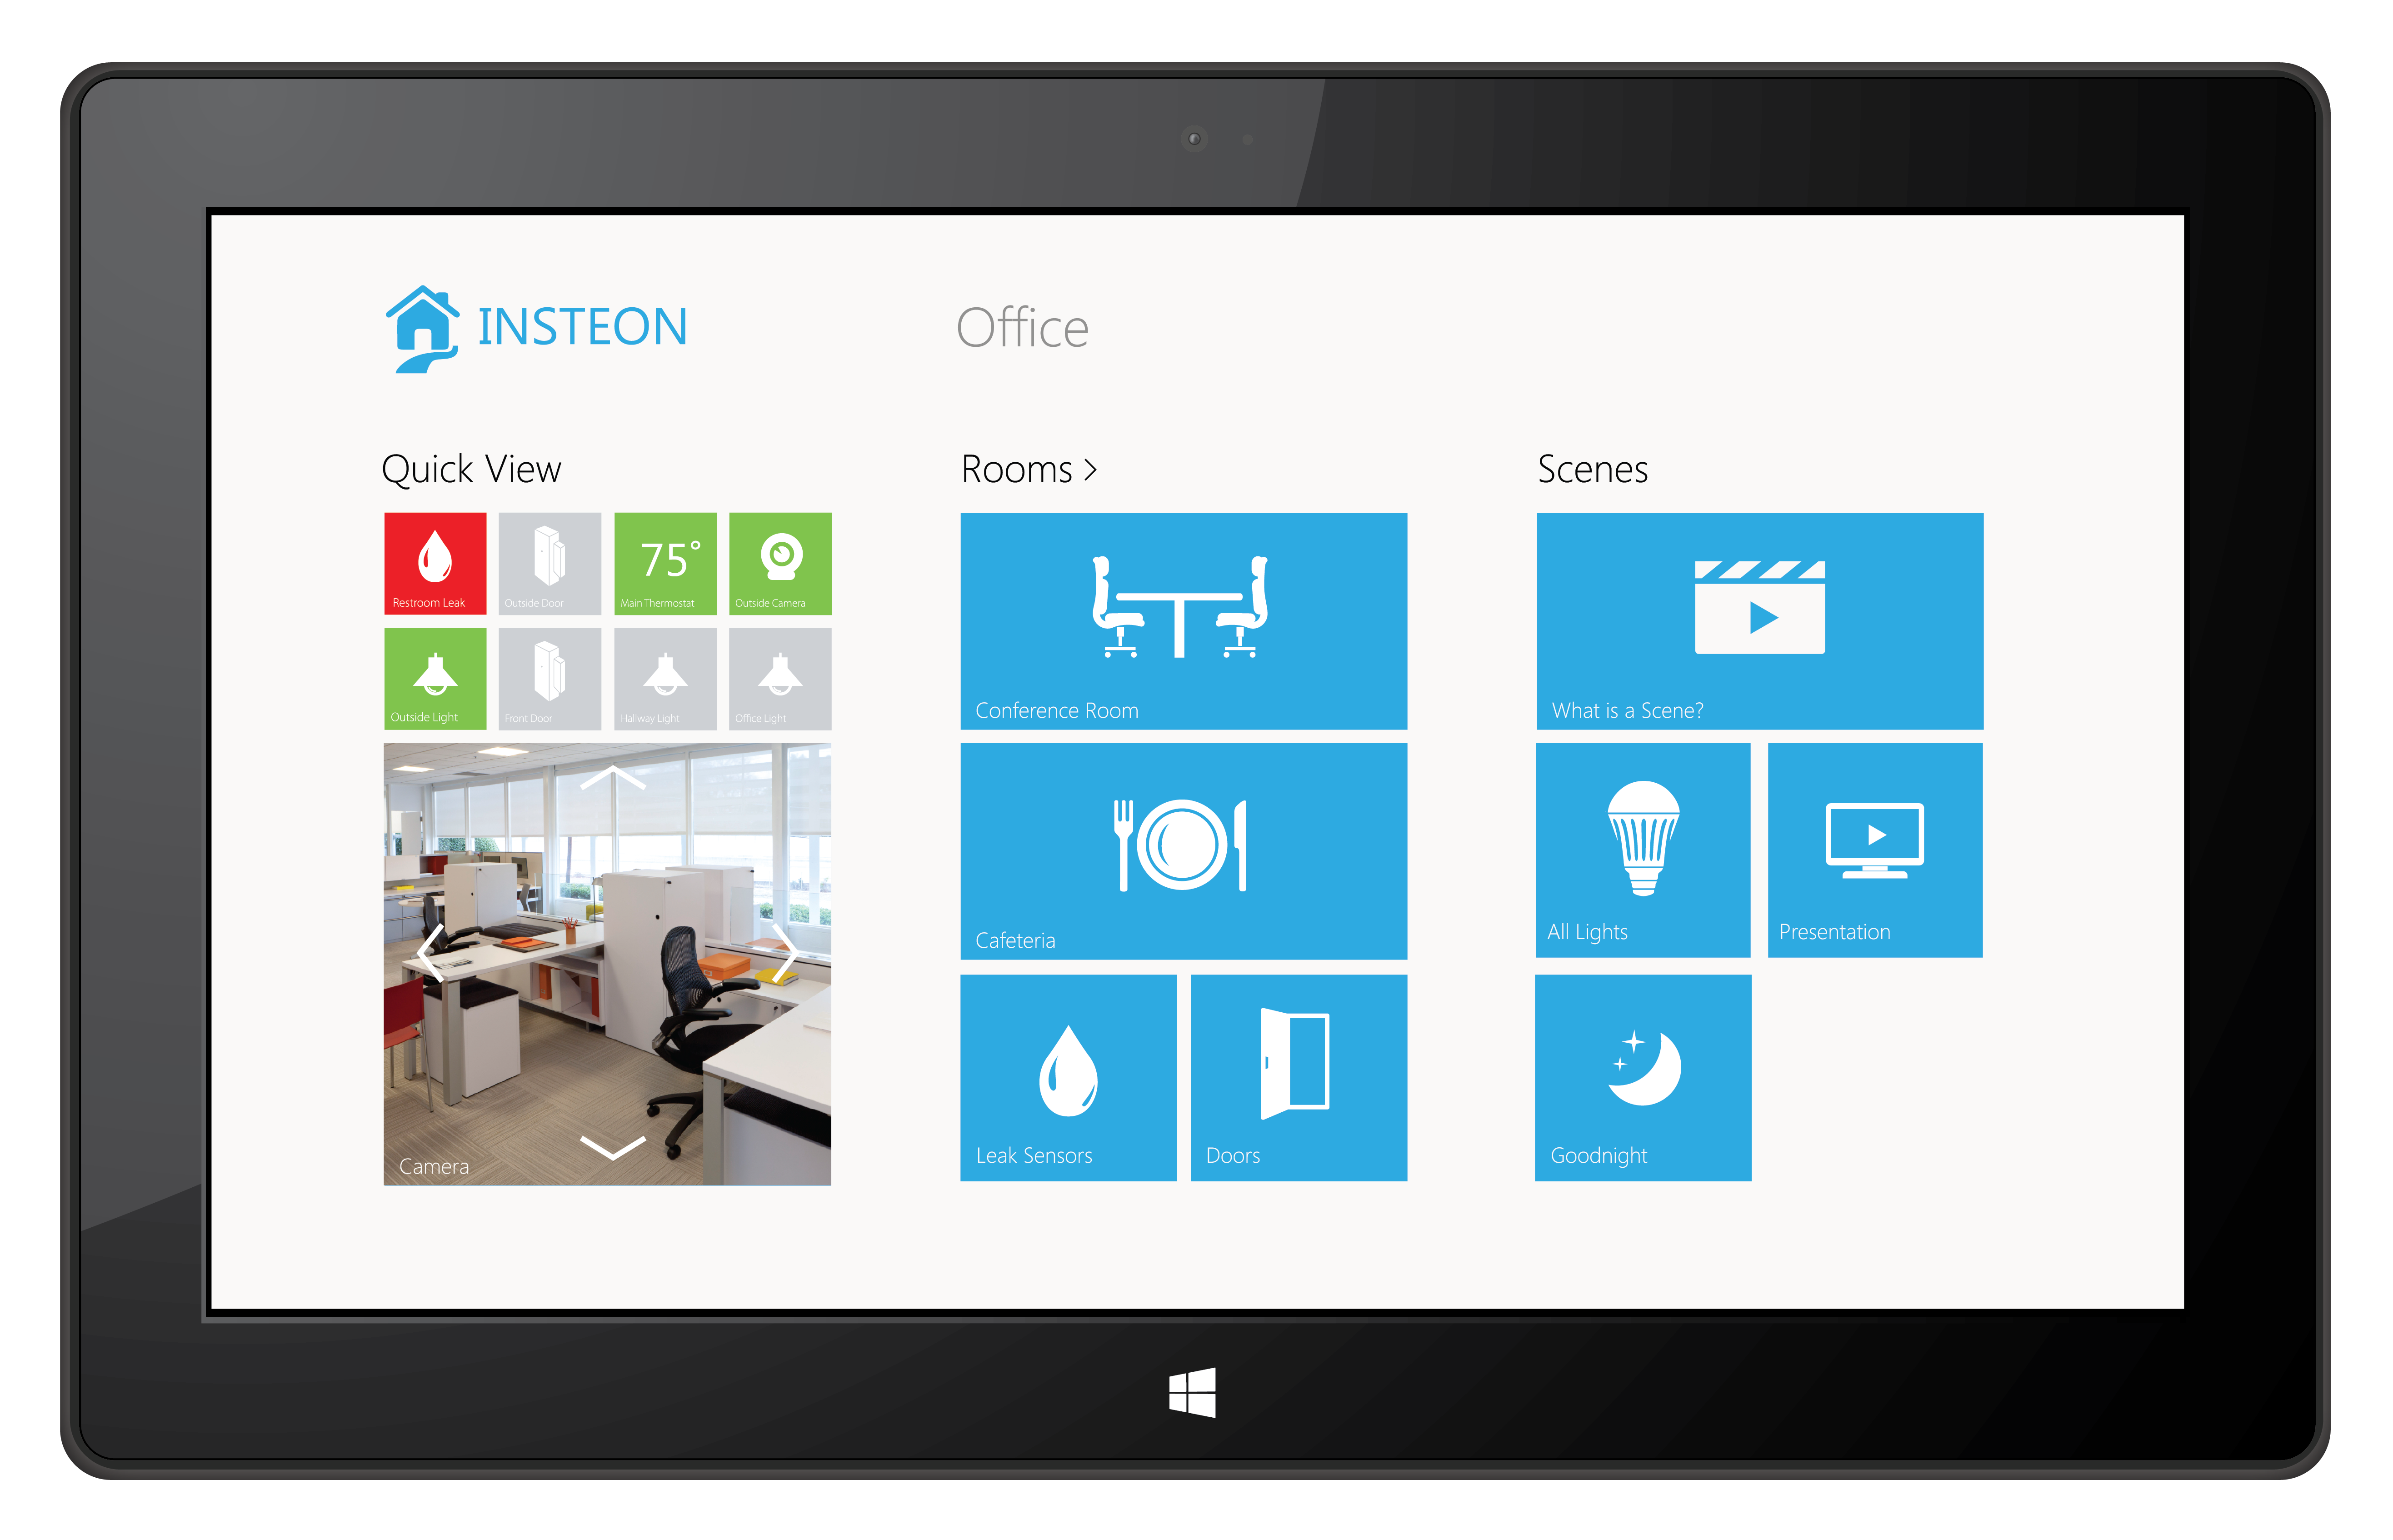 Insteon And Microsoft Team Up To Introduce Smart Home